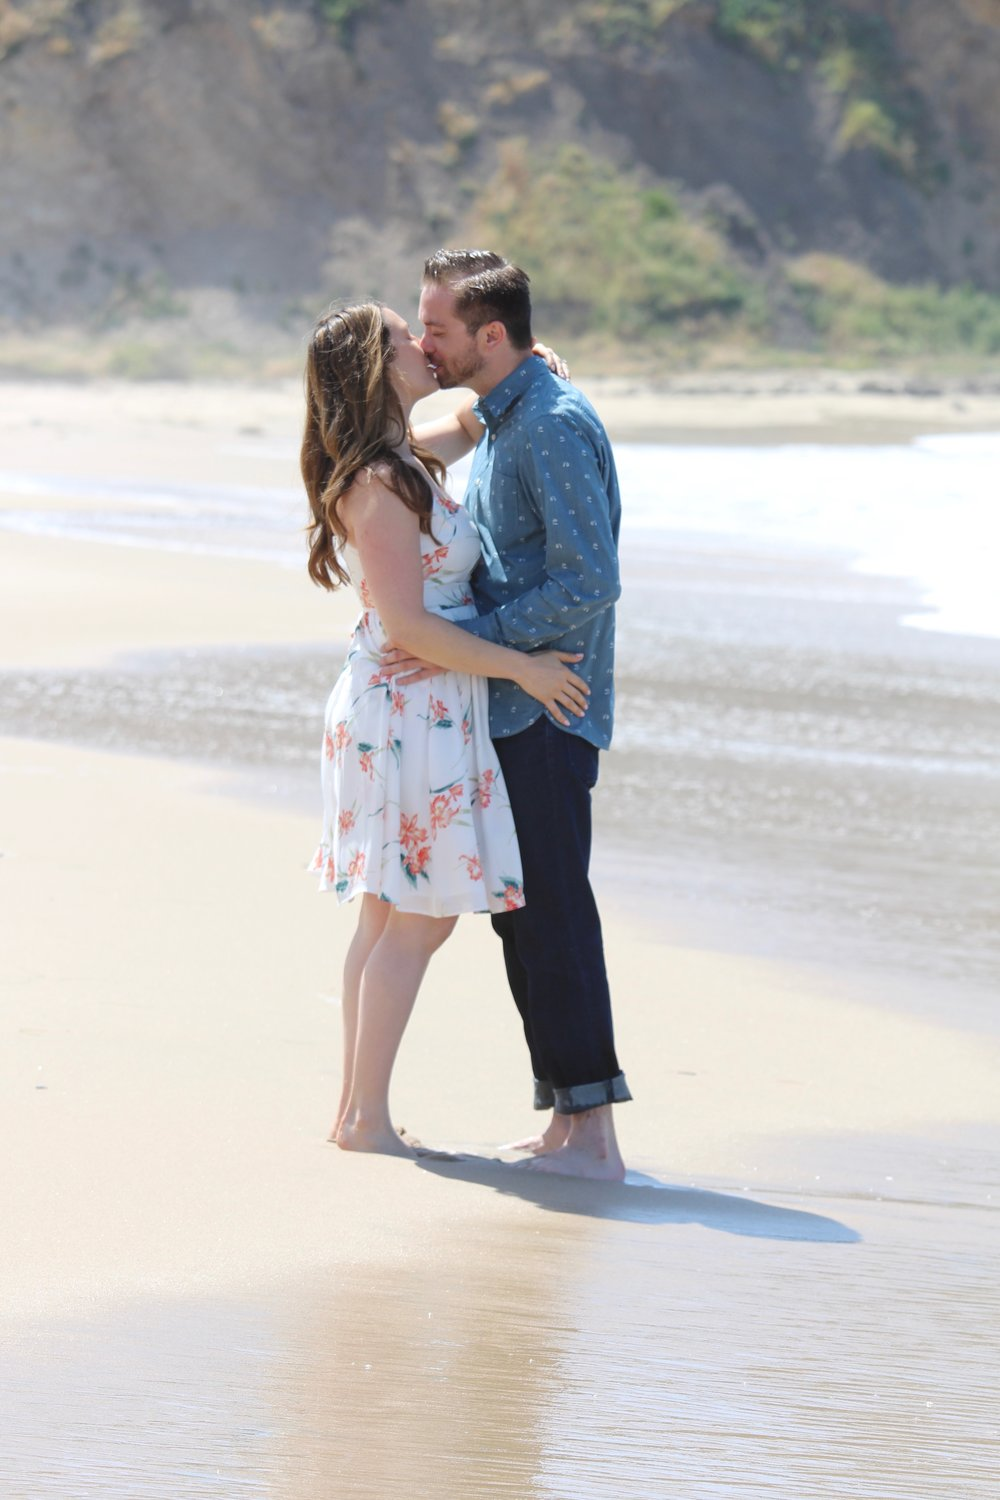 Kristin & Mike Engagement at the beach - 136.jpg